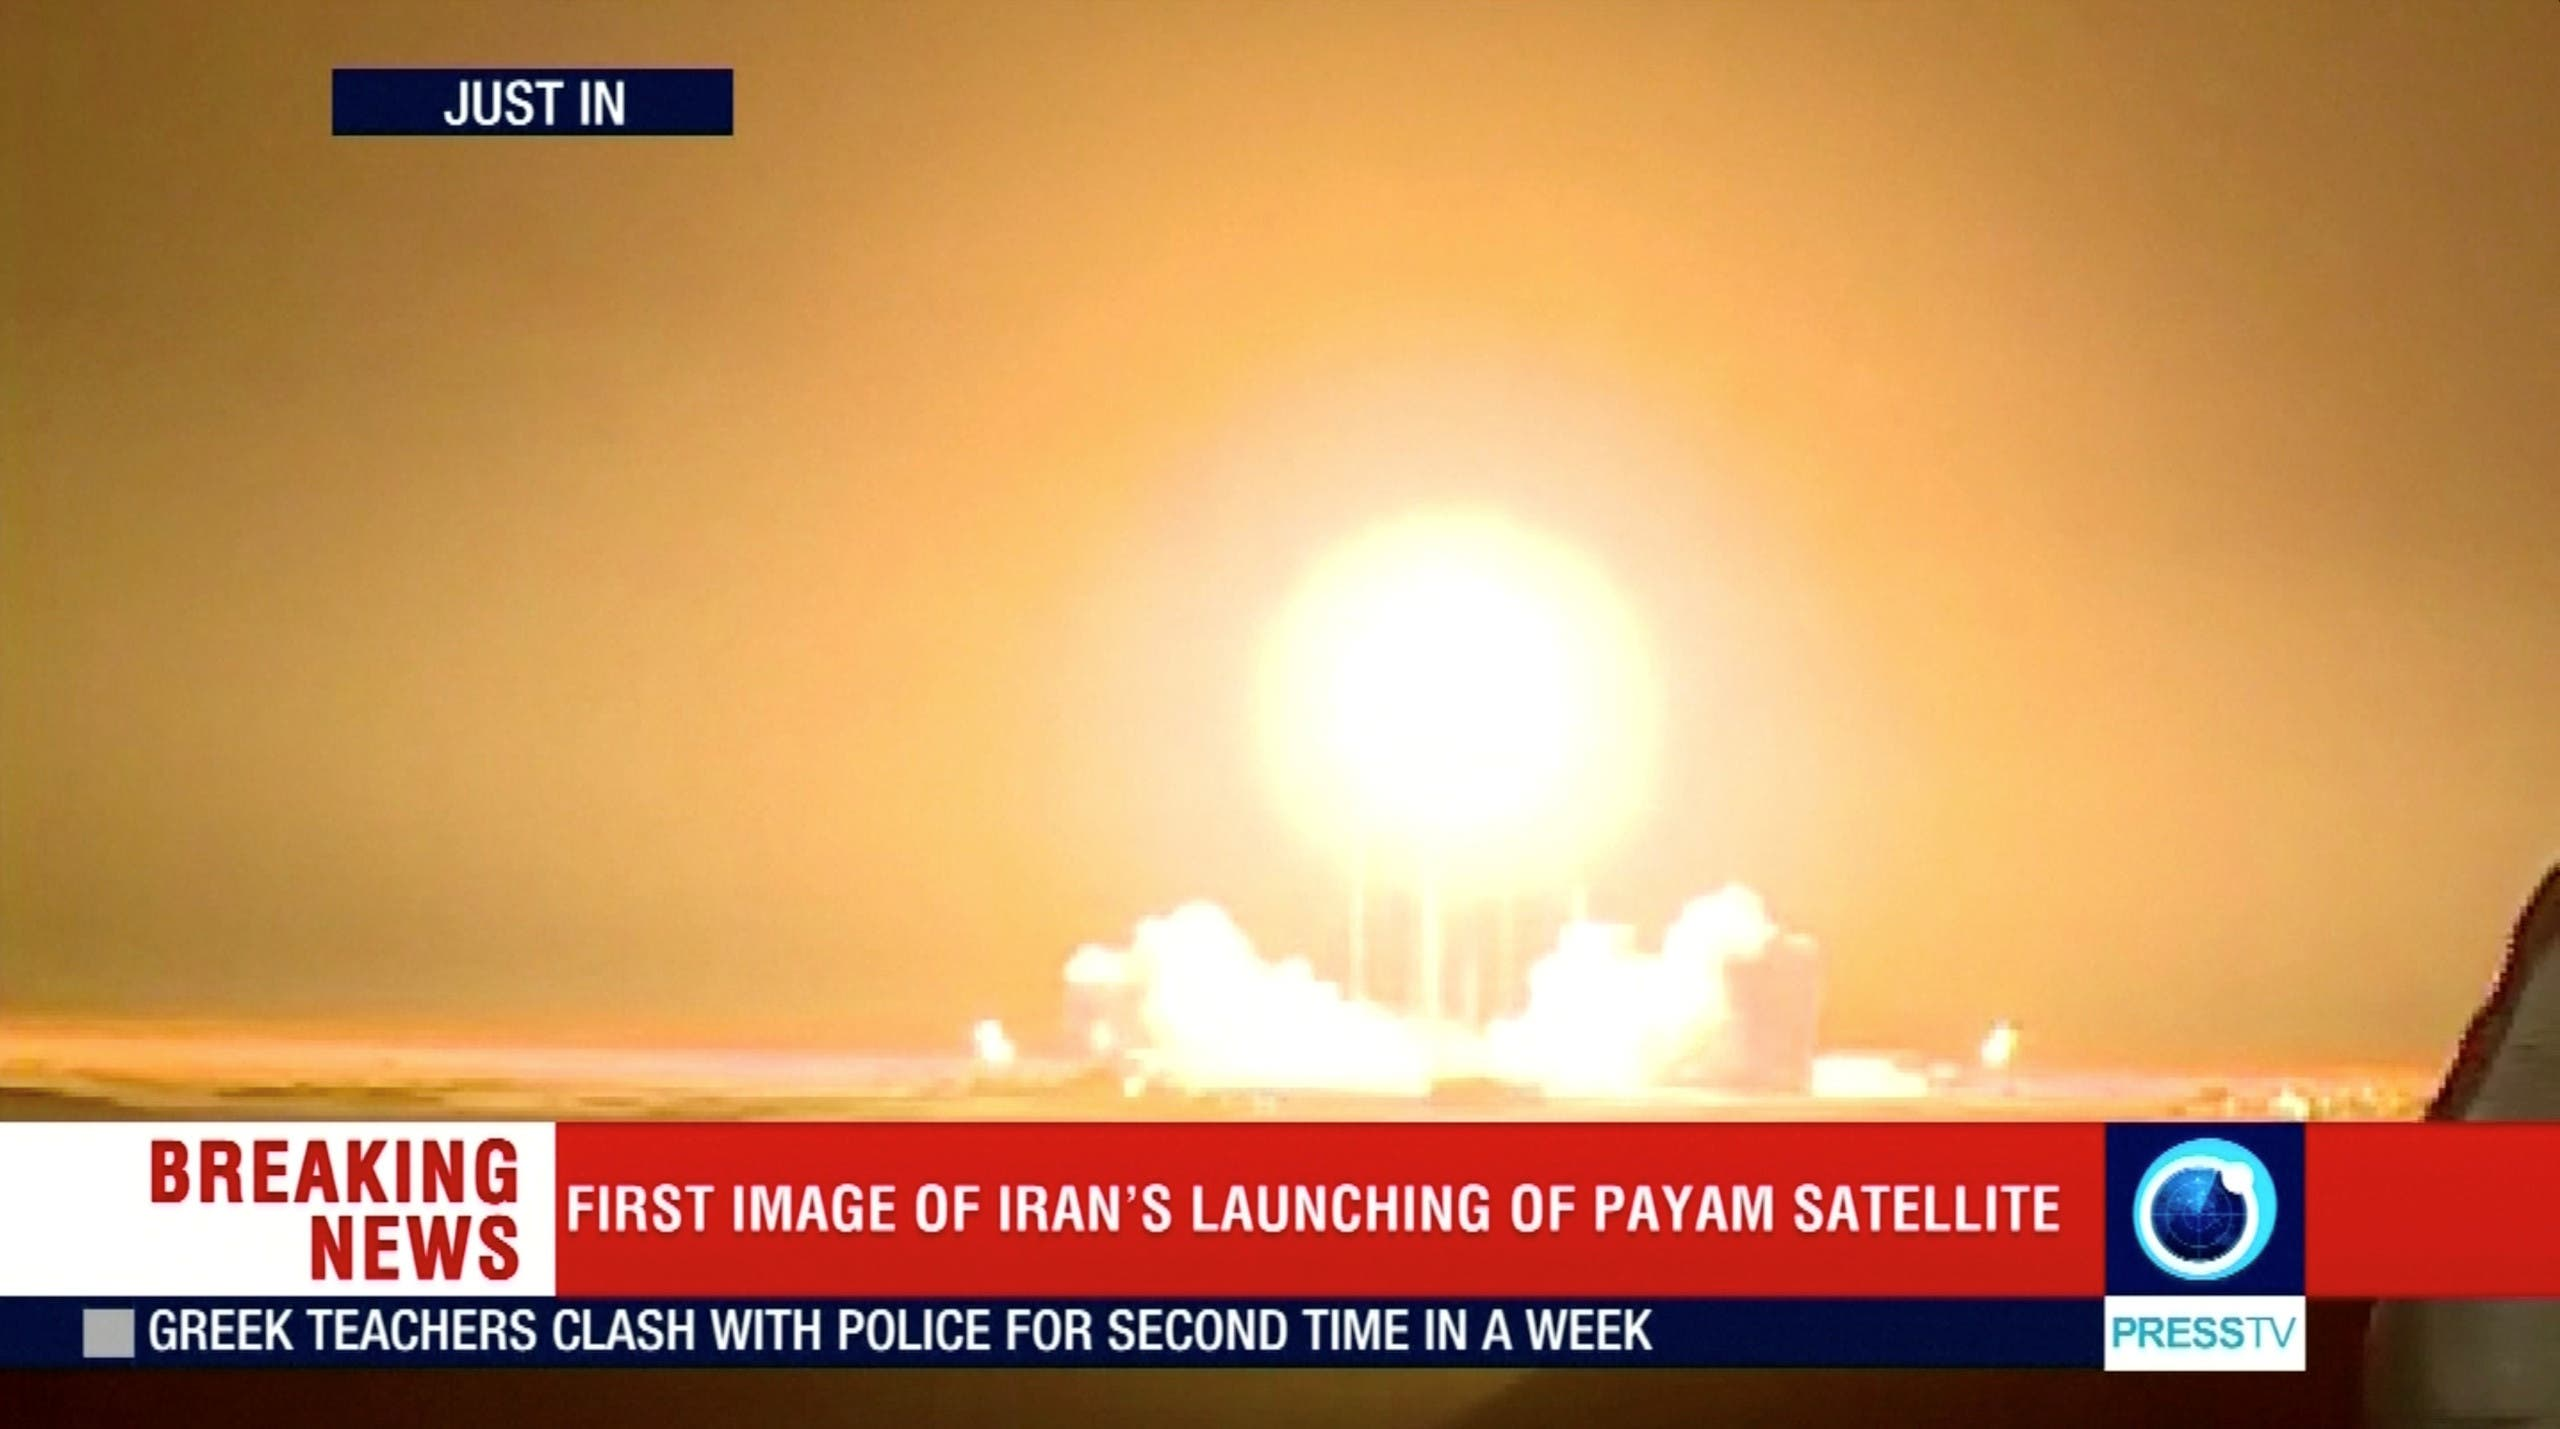 The Payam satellite is launched in Iran, January 15, 2019, in this still image taken from video. (Reuters)